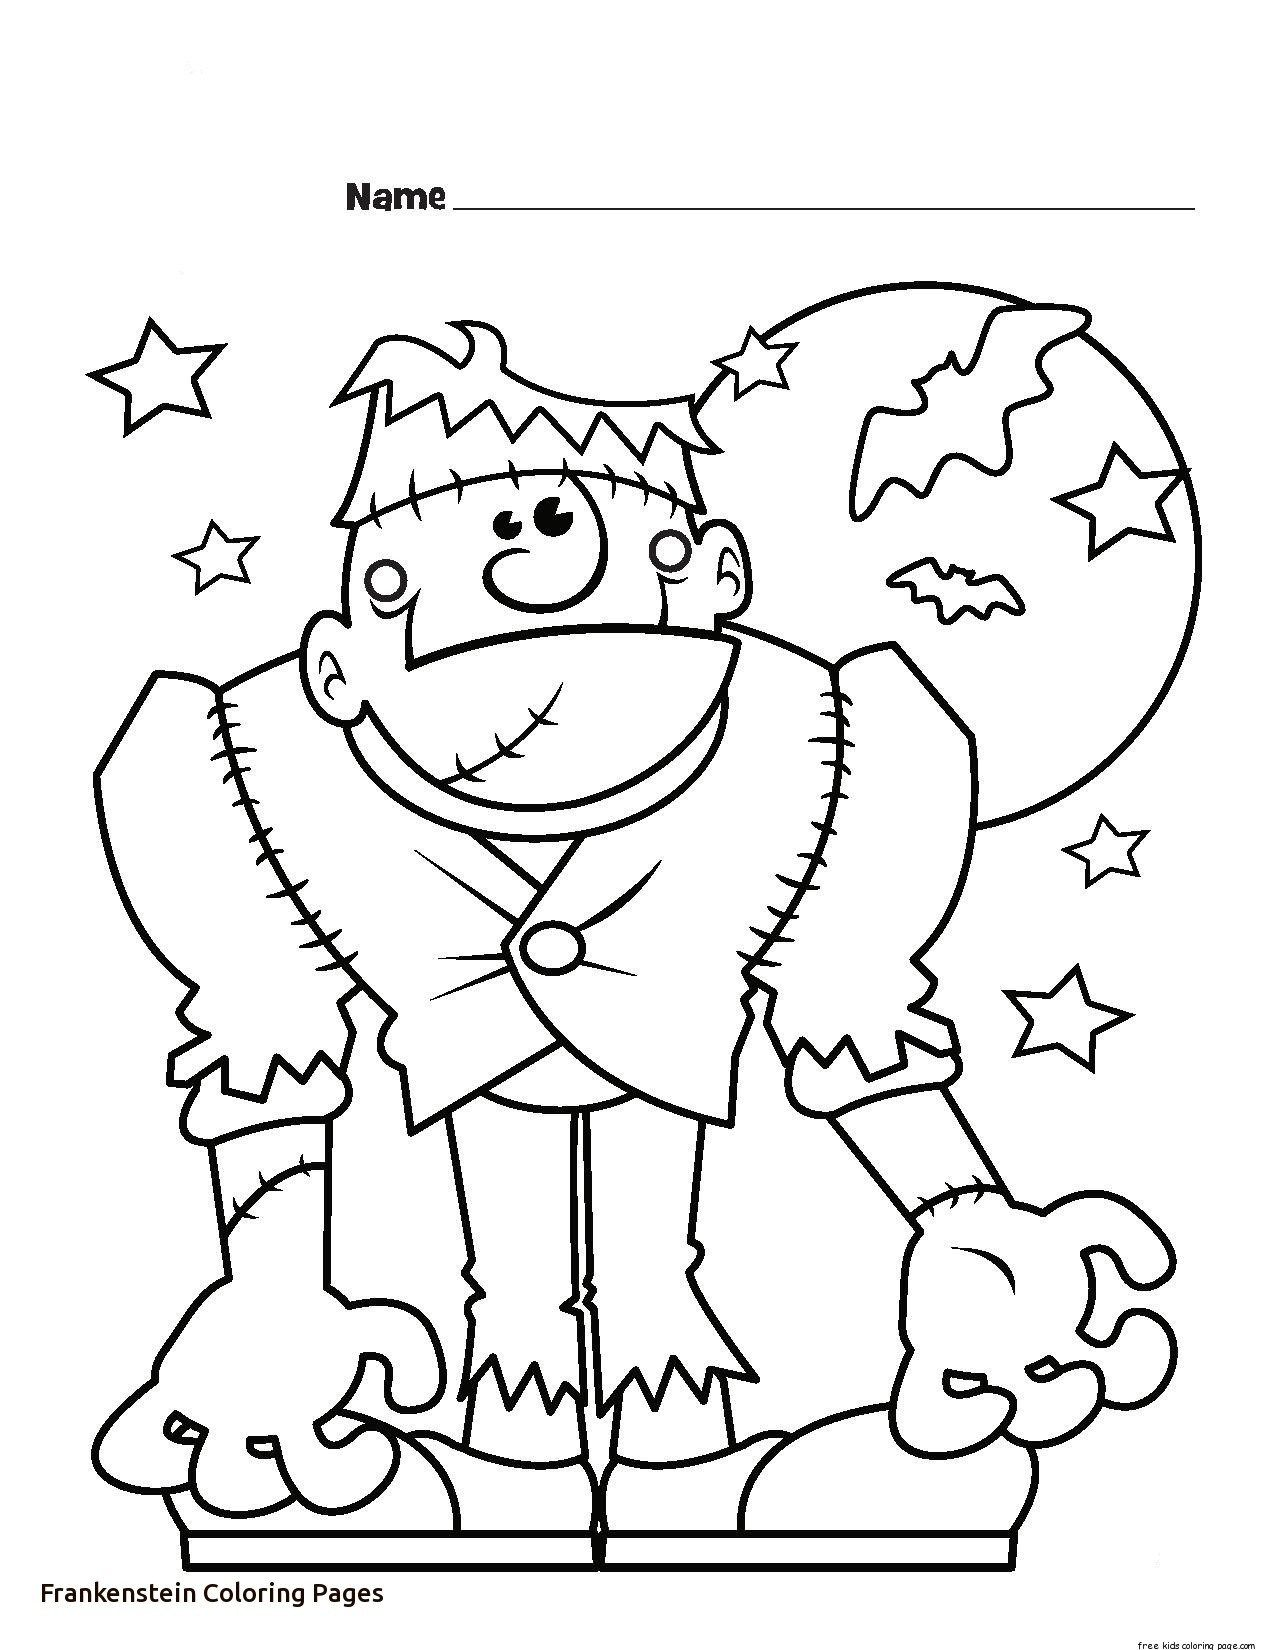 24 Awesome Picture Of Frankenstein Coloring Pages Davemelillo Com Halloween Coloring Sheets Monster Coloring Pages Halloween Coloring